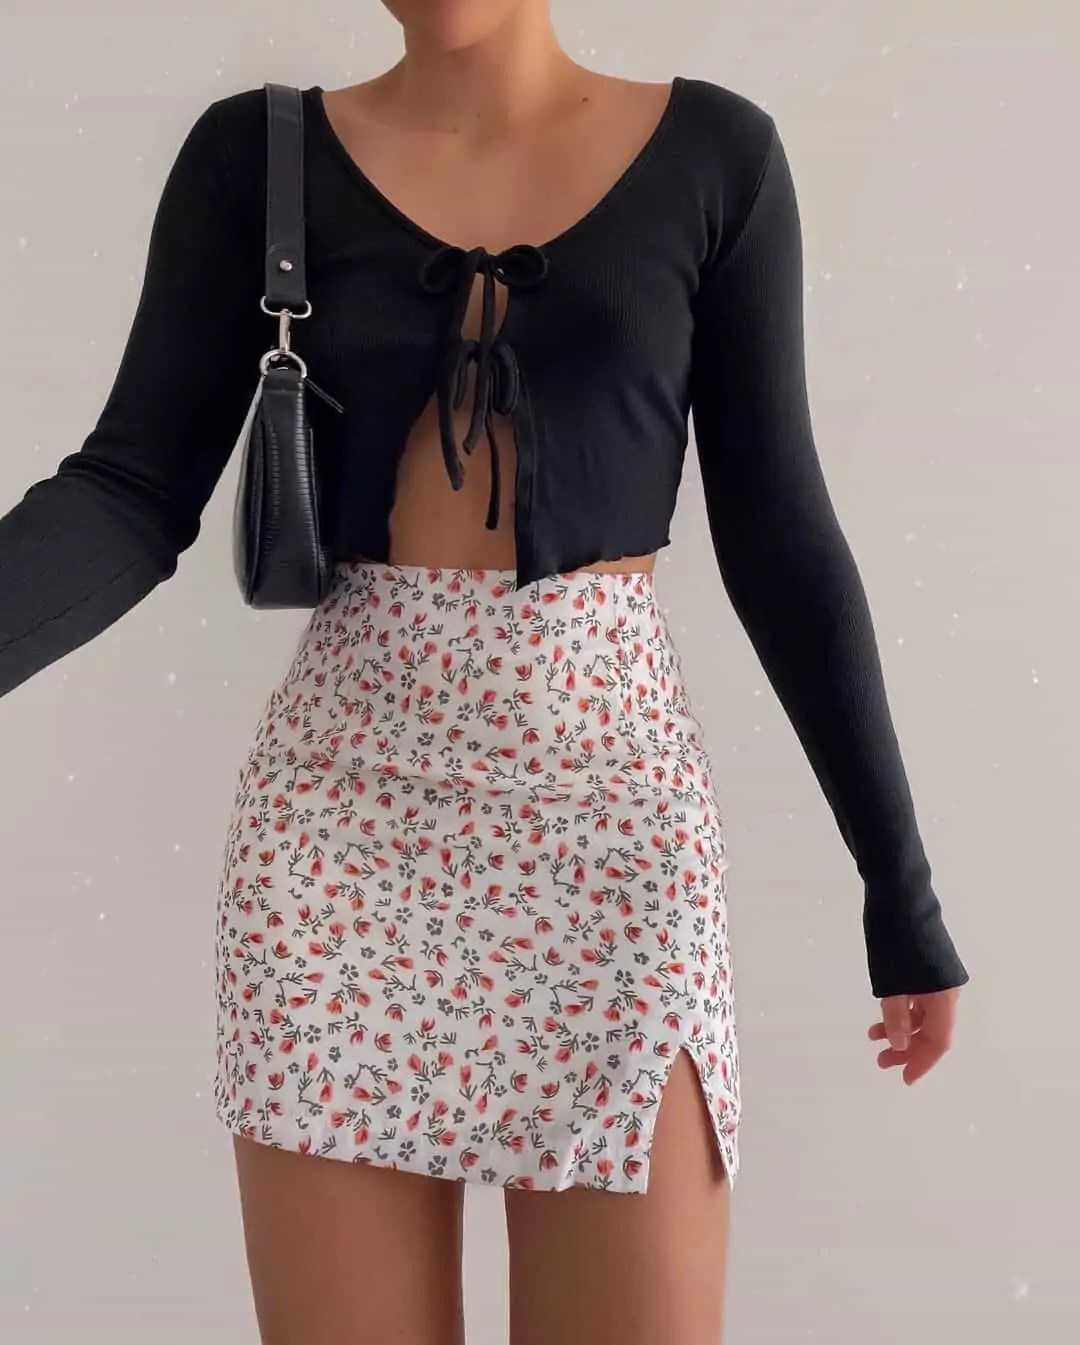 100+ Outfits to Inspire your next shopping haul 33